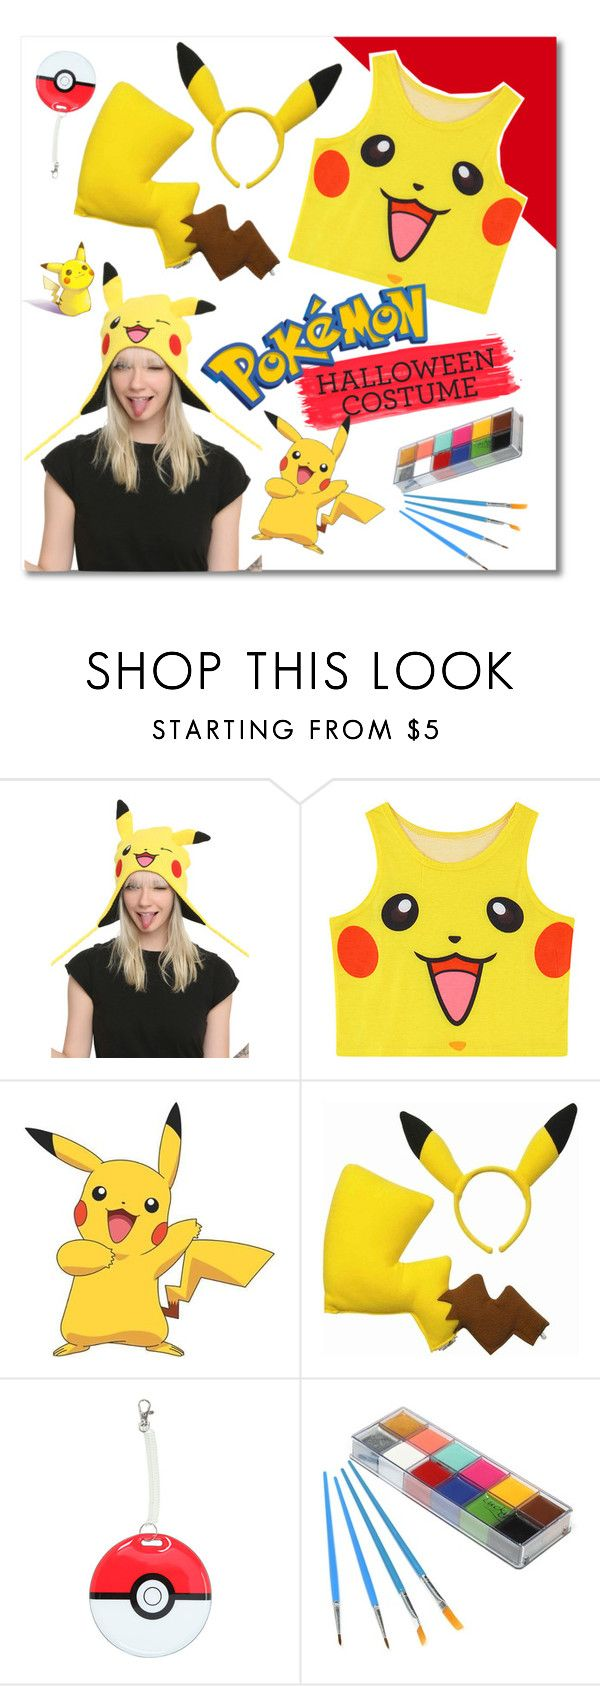 "halloween costume - pikachu!""groove-muffin ❤ liked on polyvore"